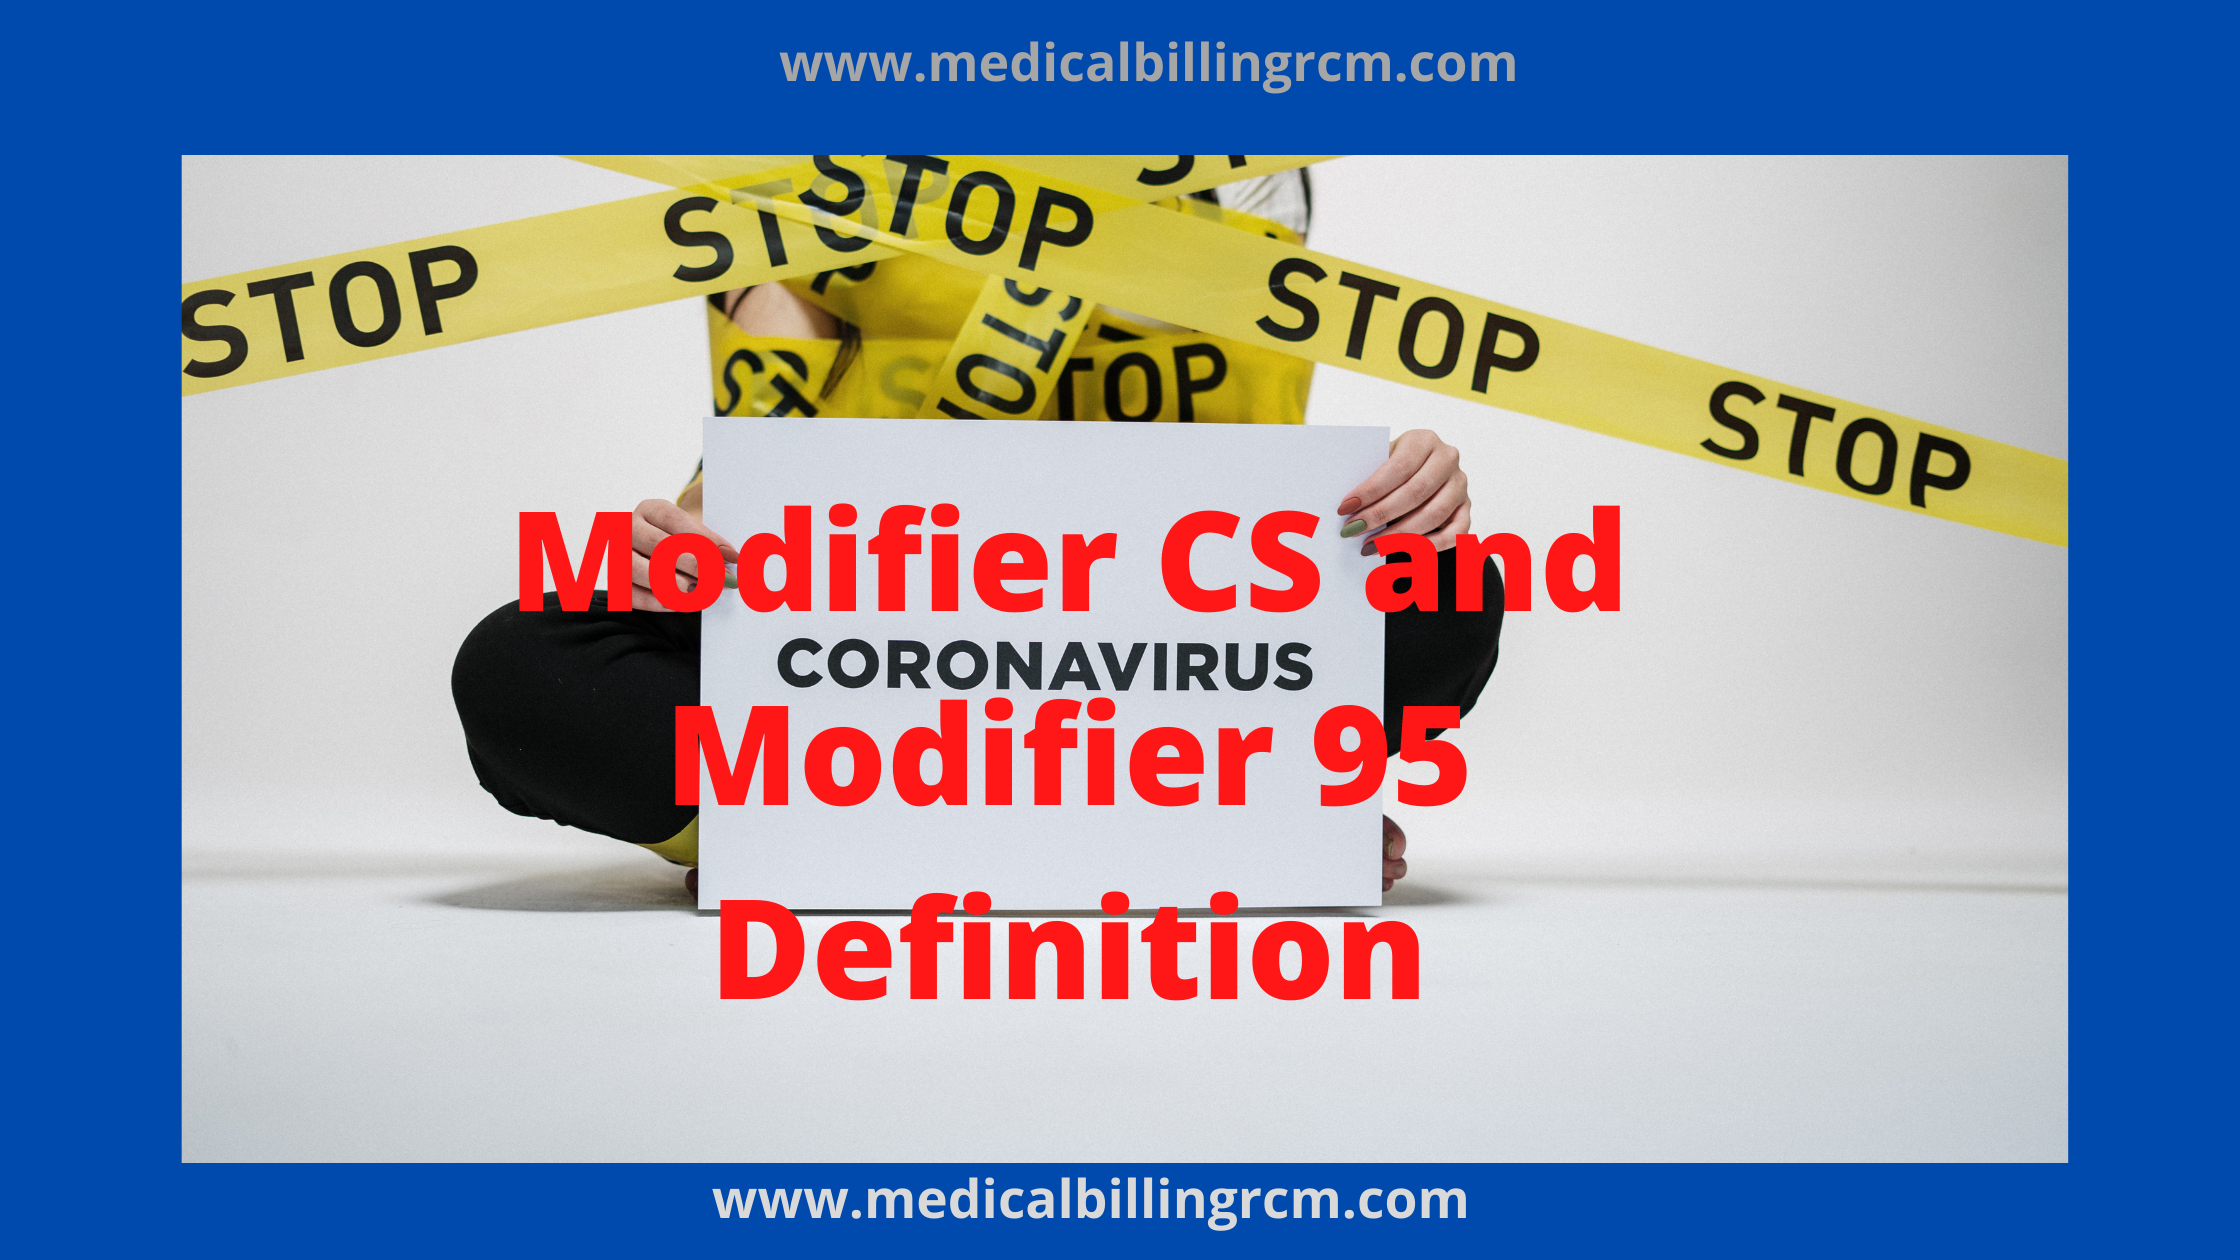 modifier cs and 95 for medicare claims